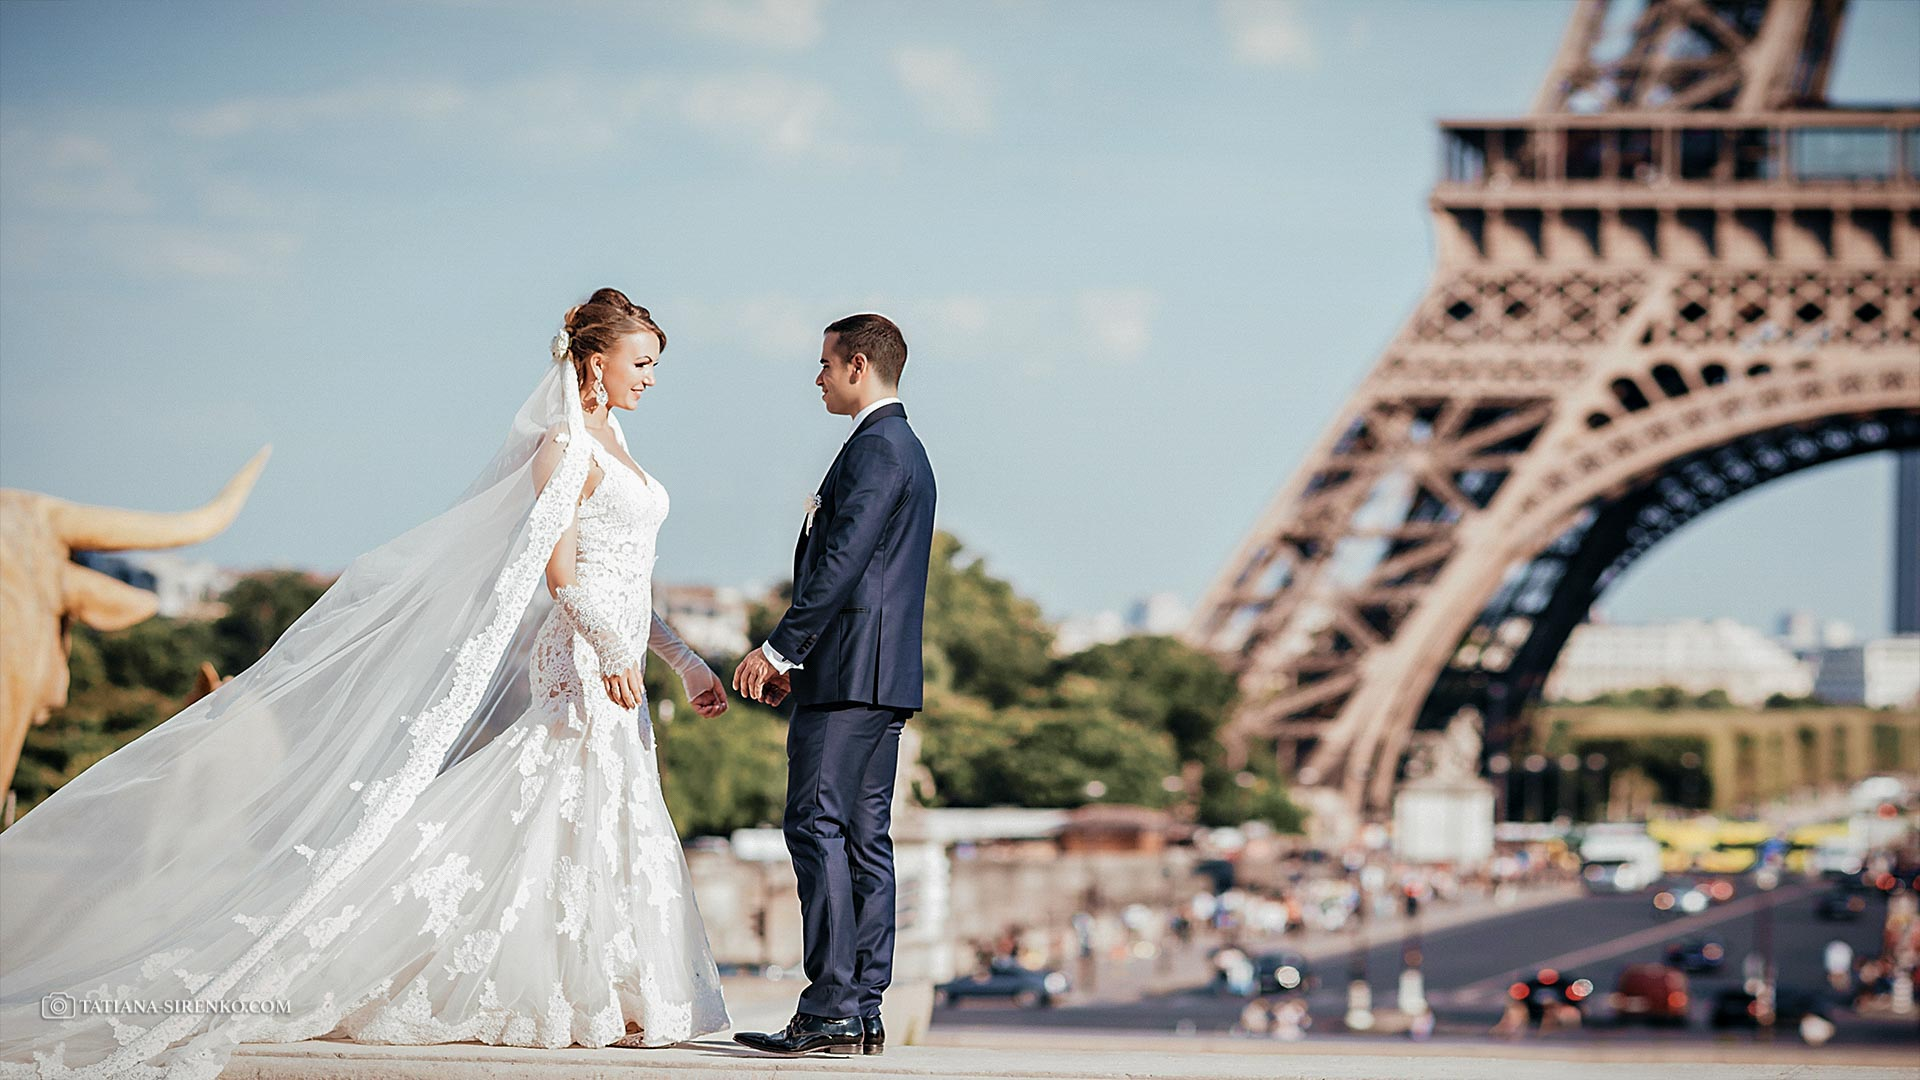 Photography in Paris at the Eiffel tower